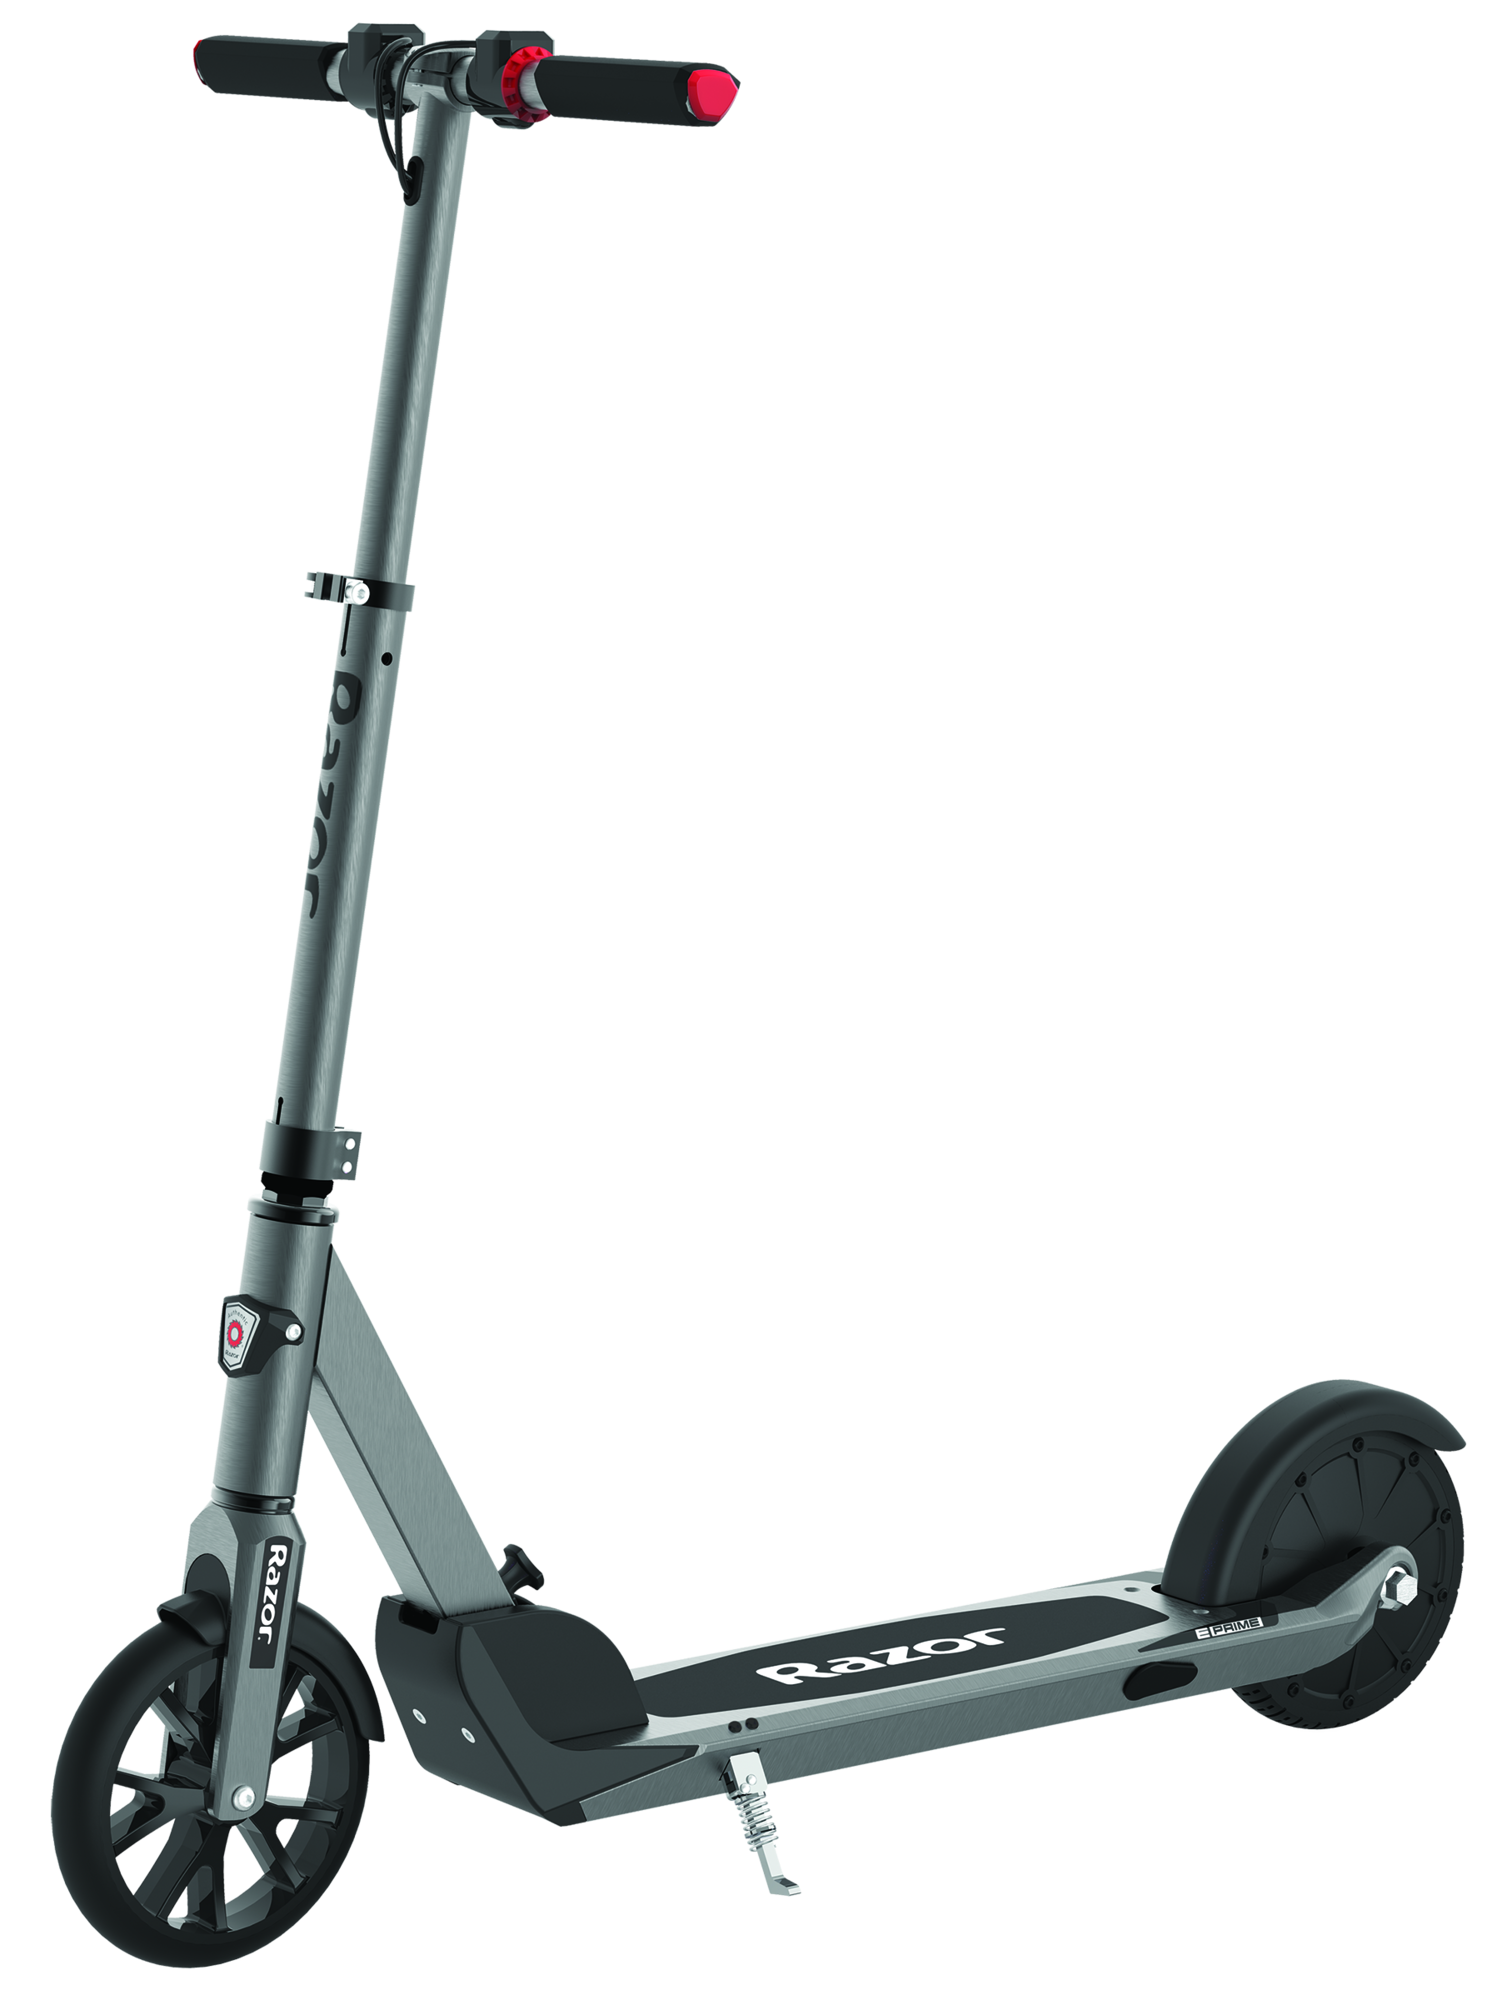 eprime electric scooter razor #37144